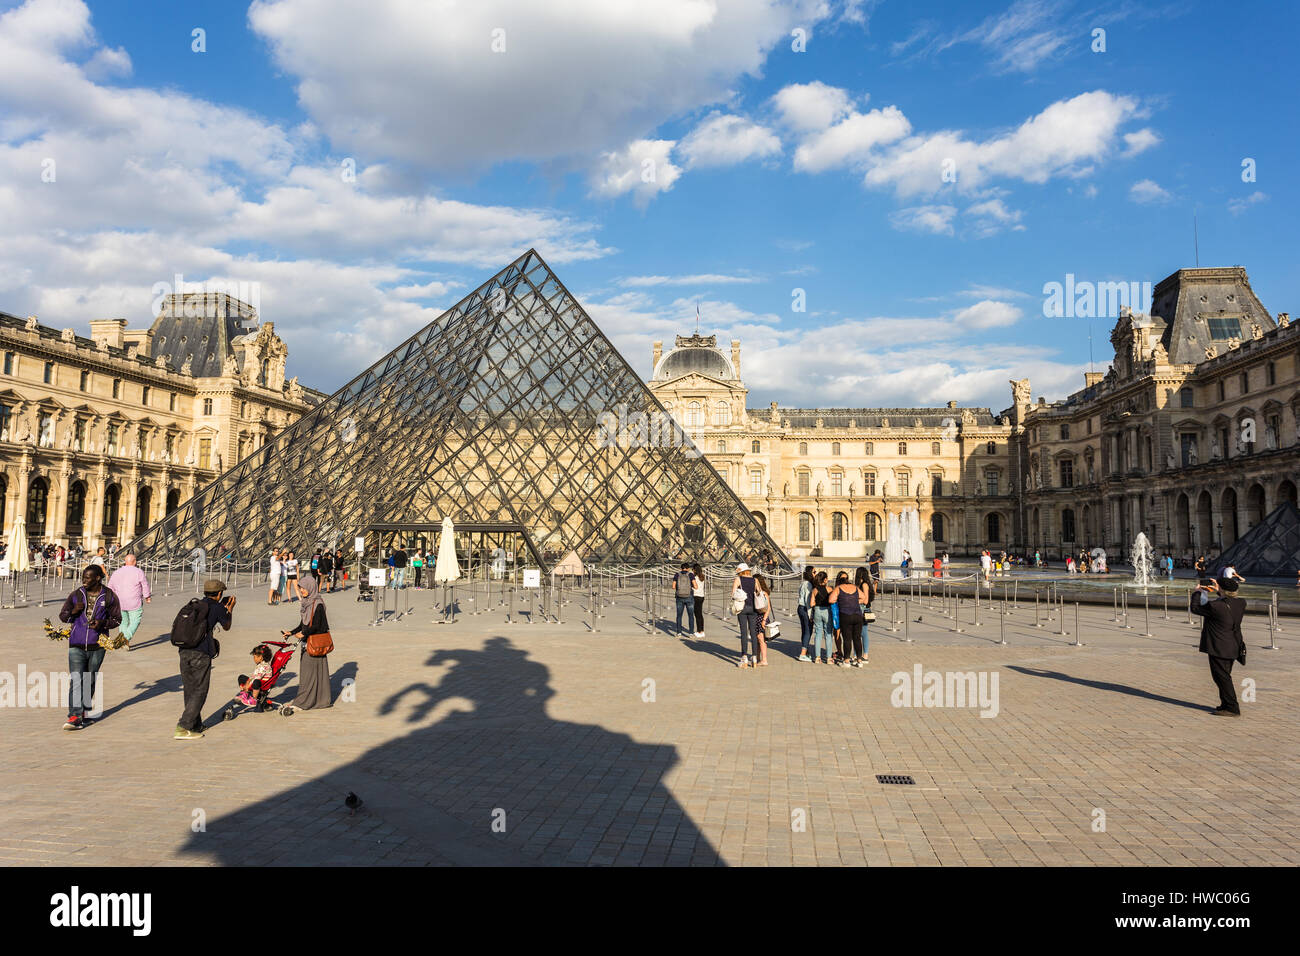 PARIS - AUGUST 6, 2016: Tourists take pictures in the Louvre Palace on a sunny day in Paris, France capital city. - Stock Image